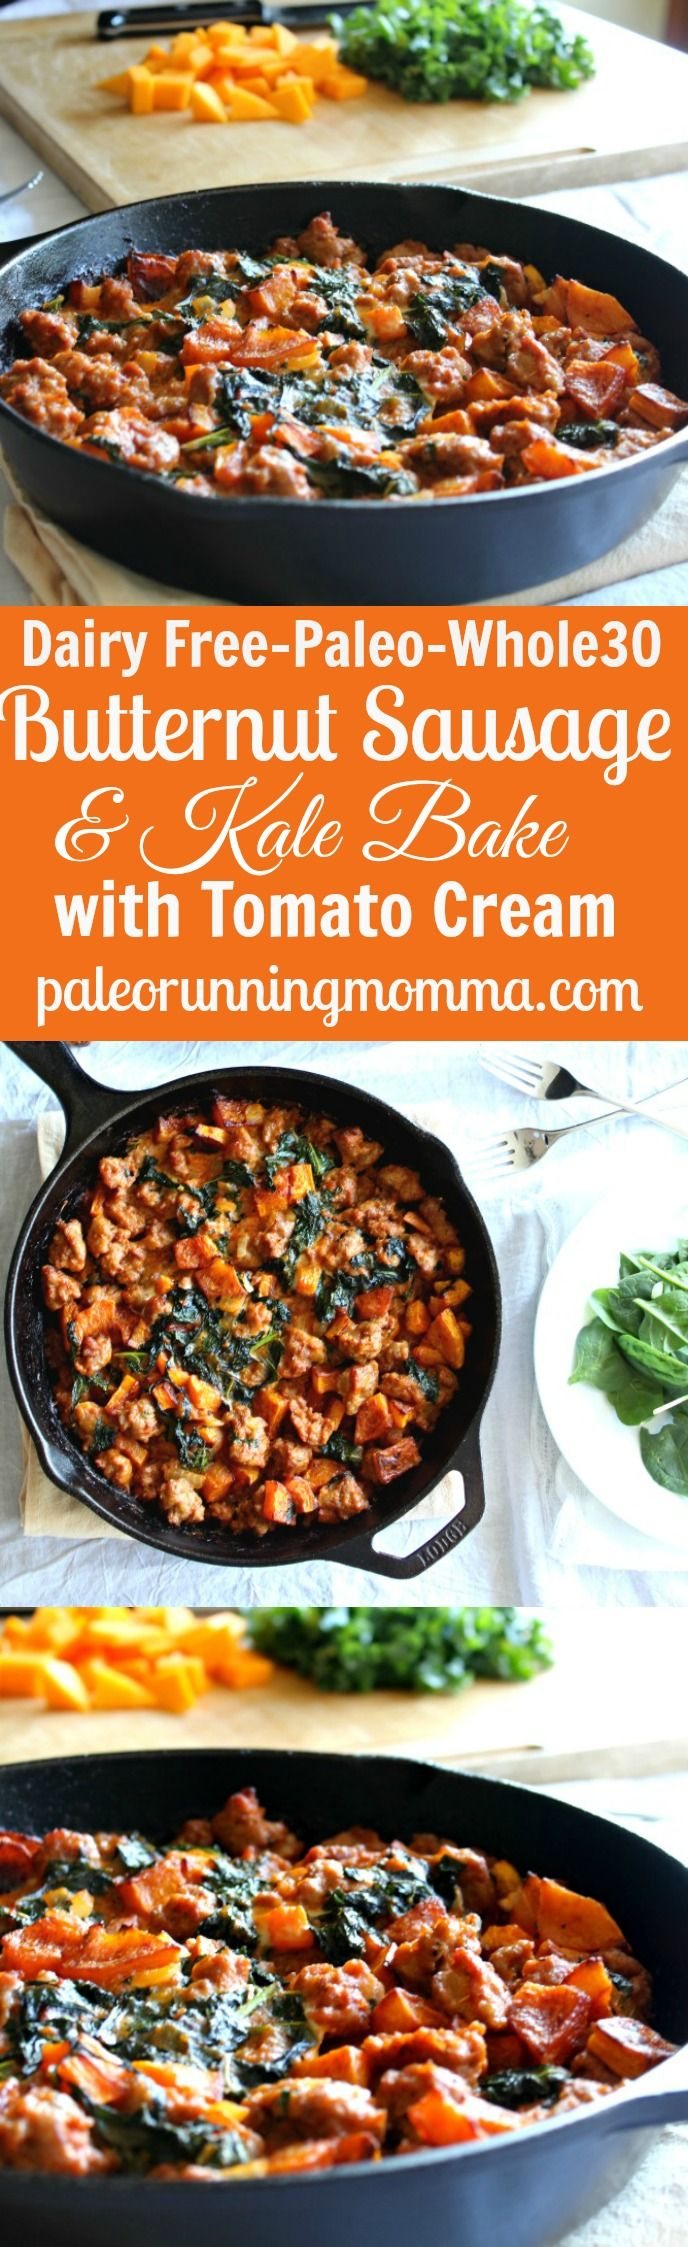 Dairy free, gluten free, paleo and whole30 friendly, this Butternut, Sausage, and Kale bake has a creamy tomato sauce that makes for a hearty, savory and irresistible one pot meal